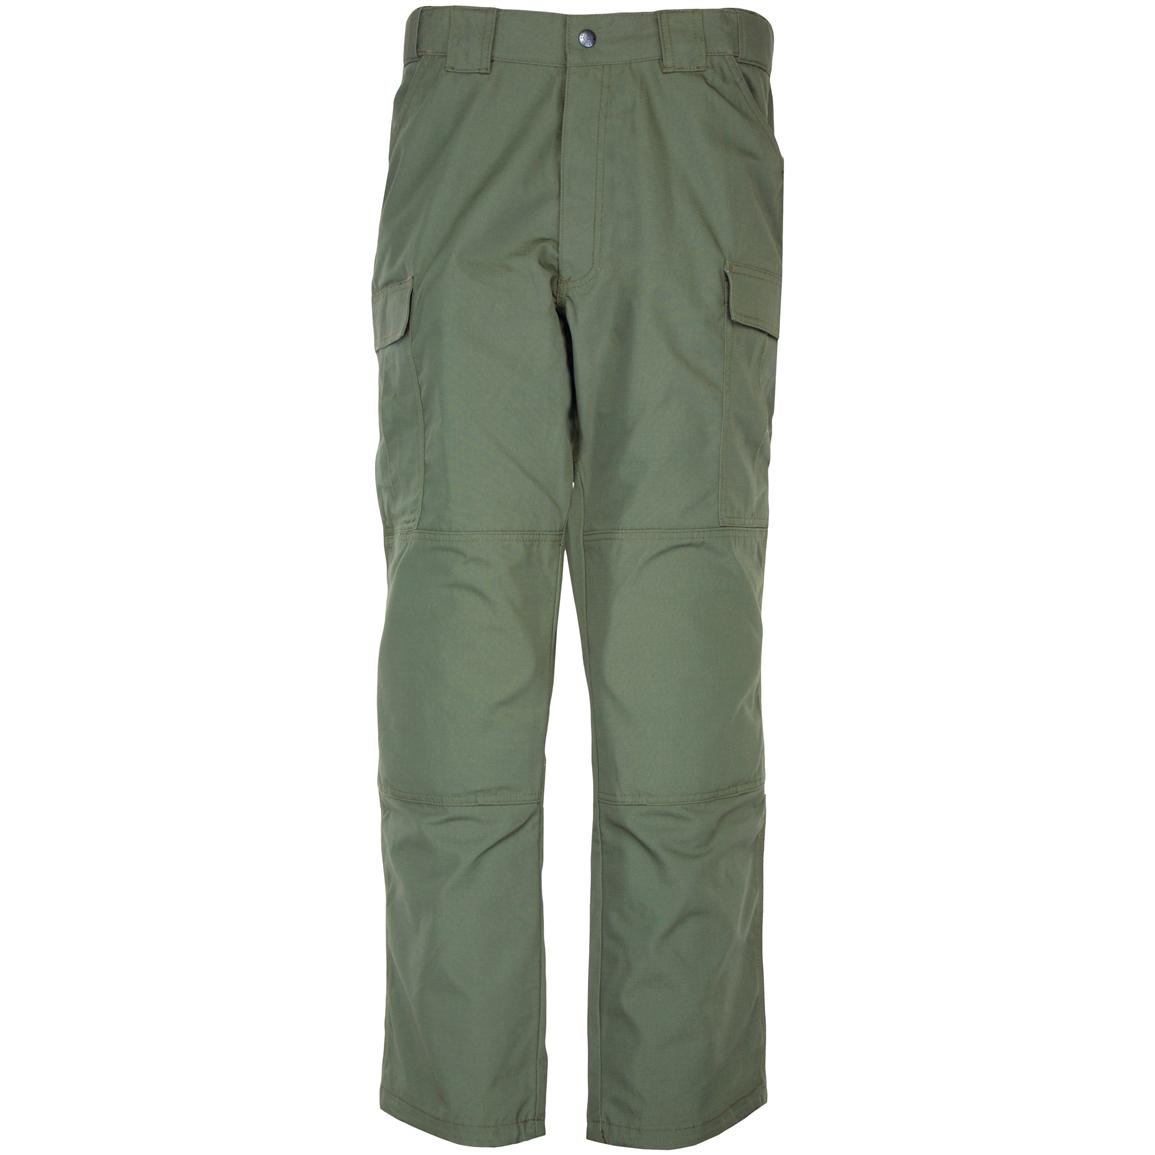 Men's 5.11 Tactical® Ripstop TDU® Pants, TDU Green